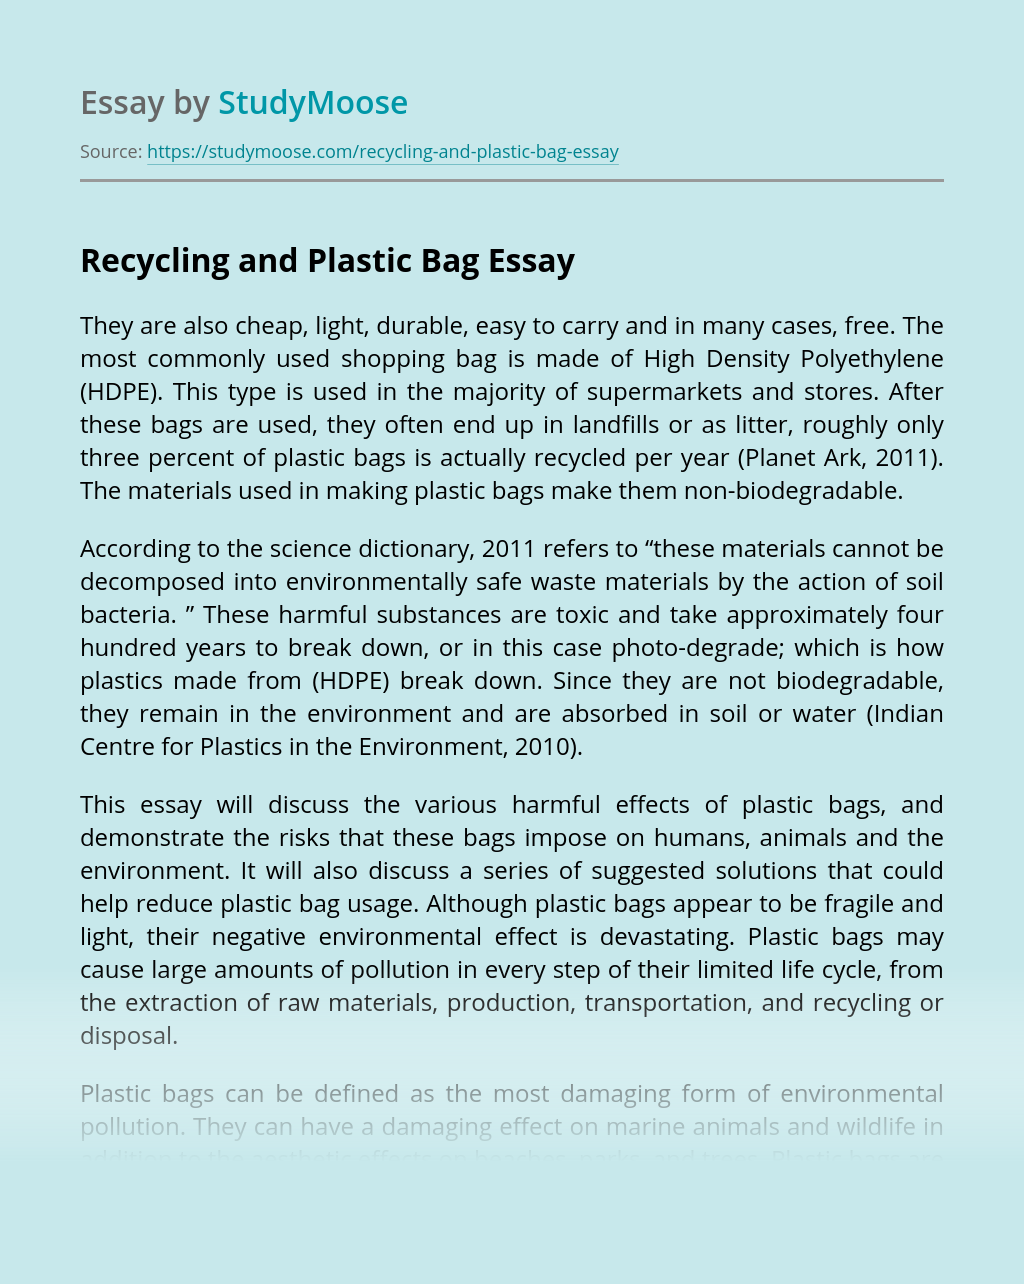 Recycling and Plastic Bag